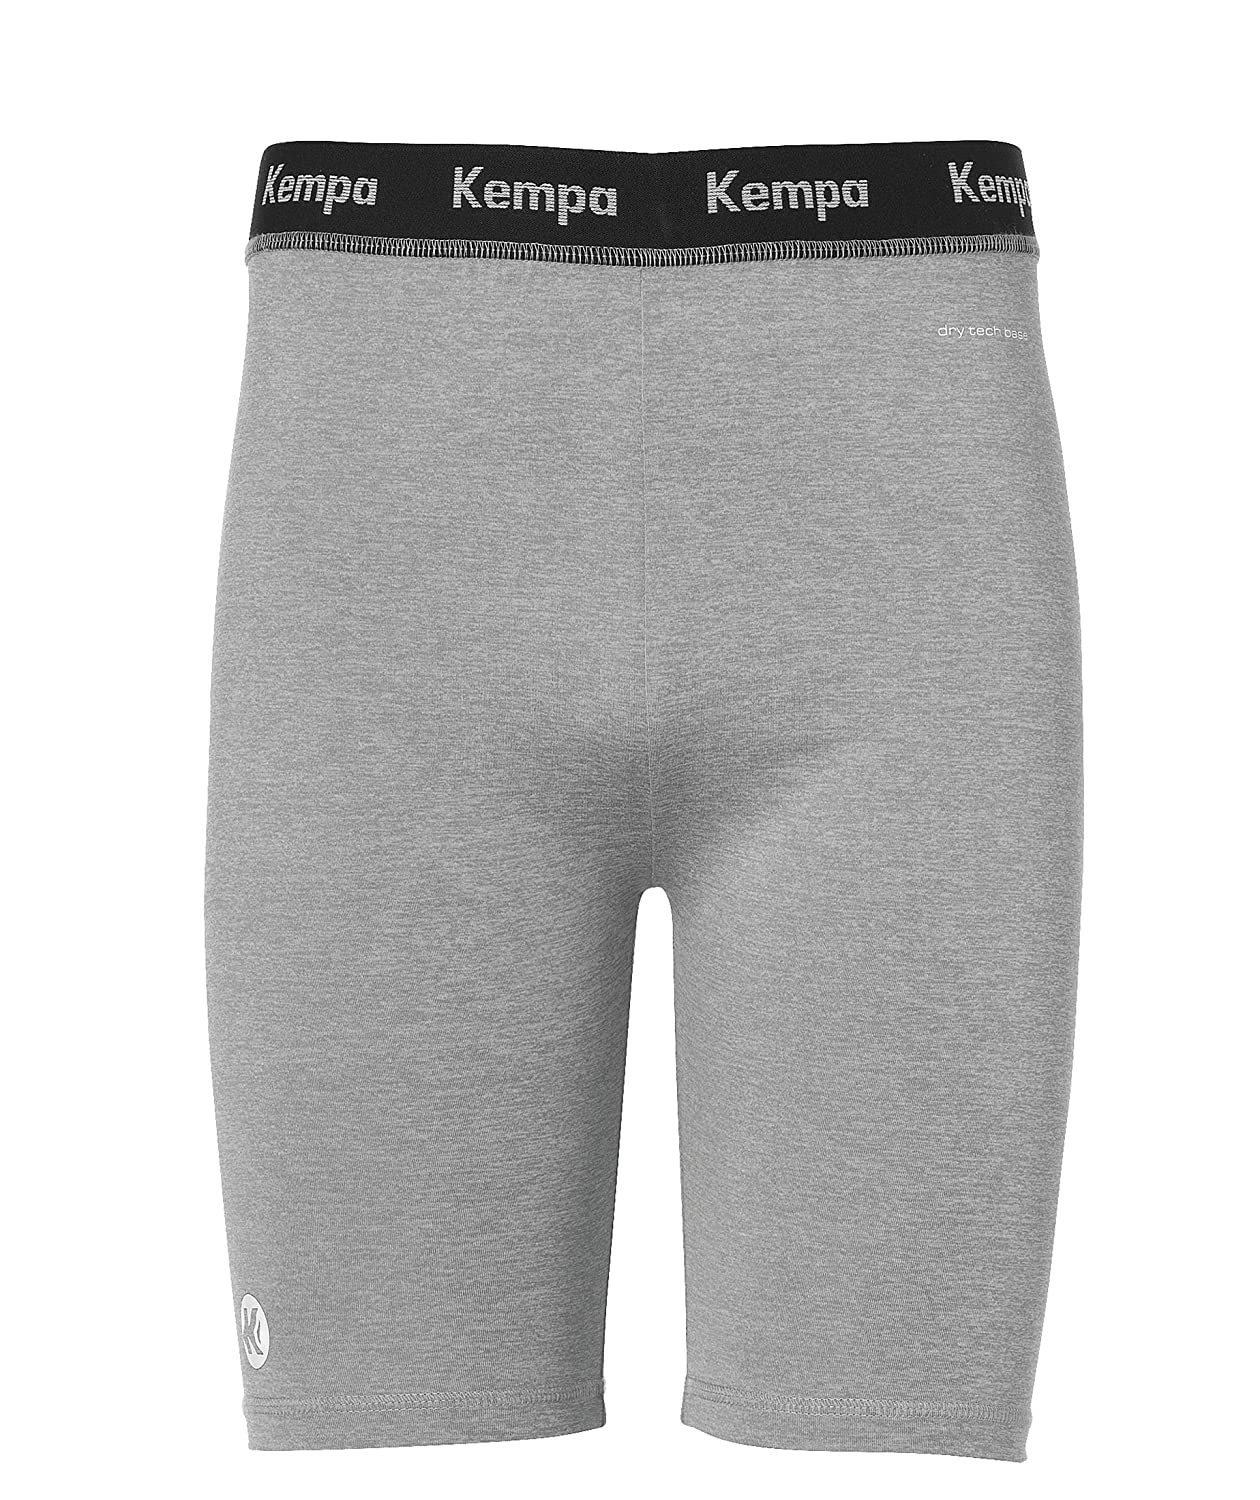 Kempa Pantaloni Tights Kids per Bambini